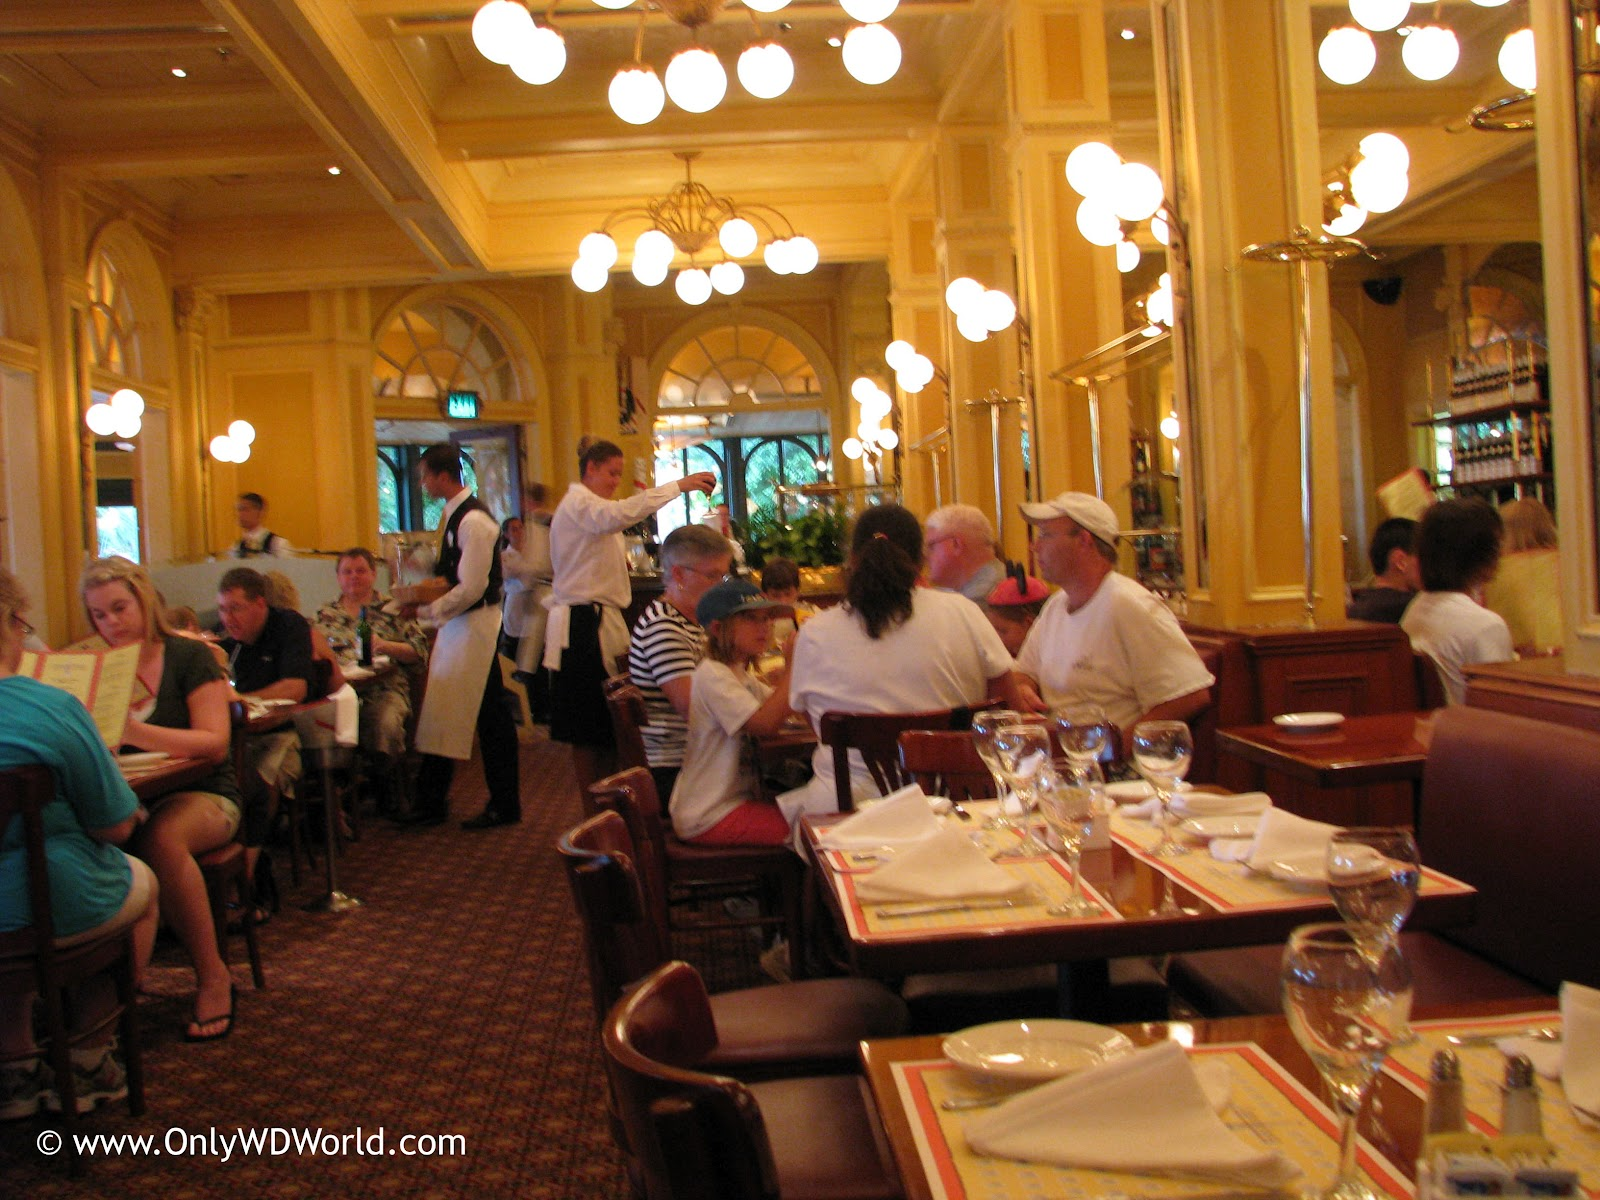 Disney world free dining plan offer for fall 2012 your How to get free dining at disney